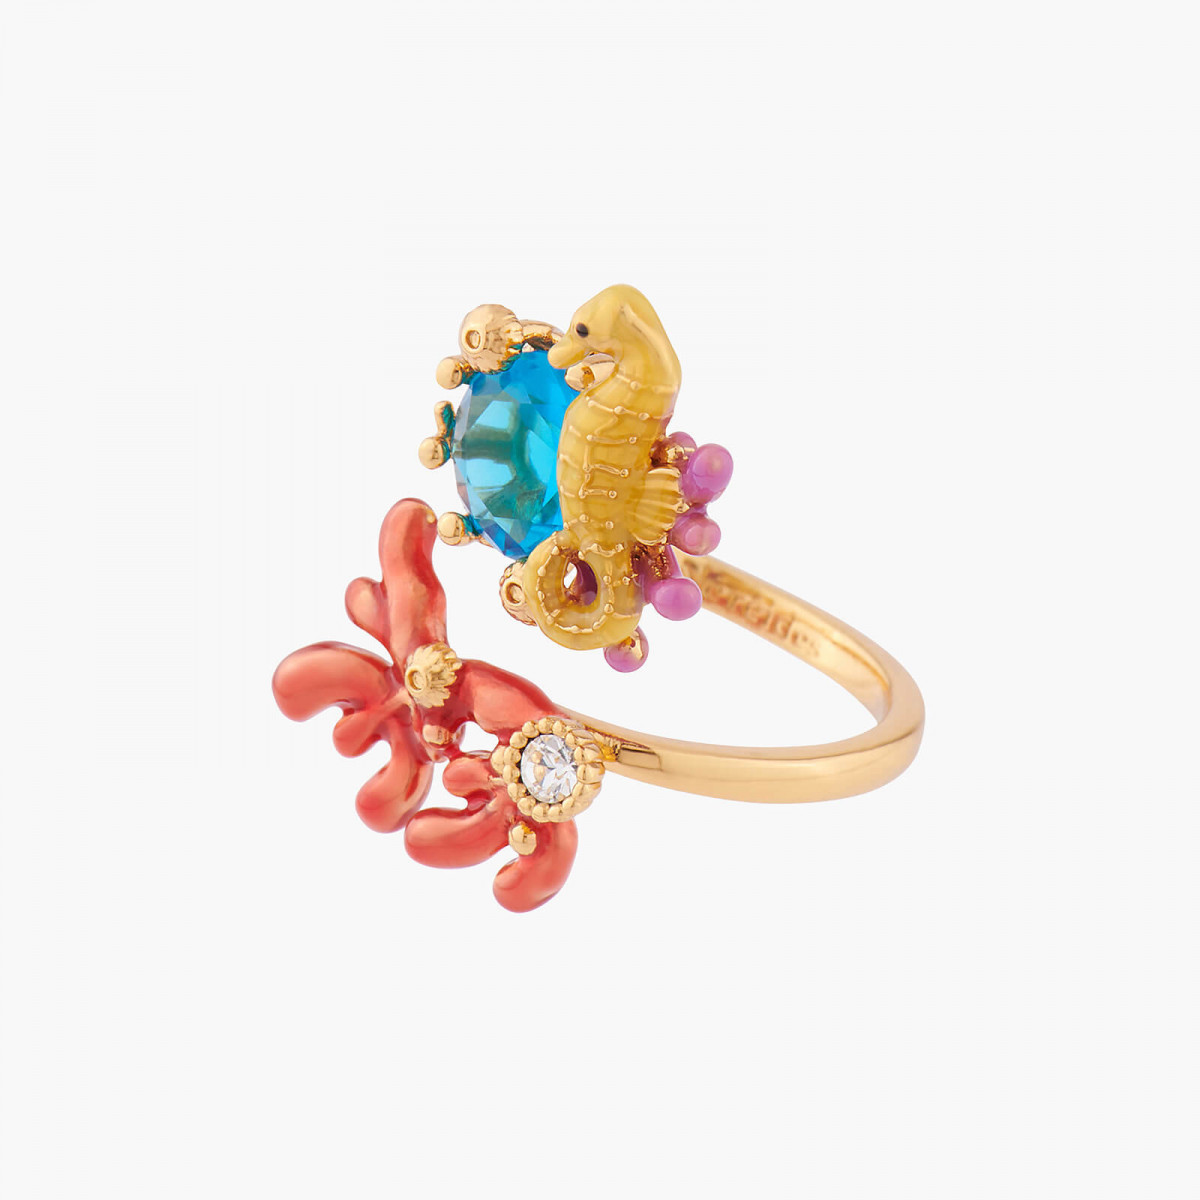 Curious dog and blue stone adjustable ring